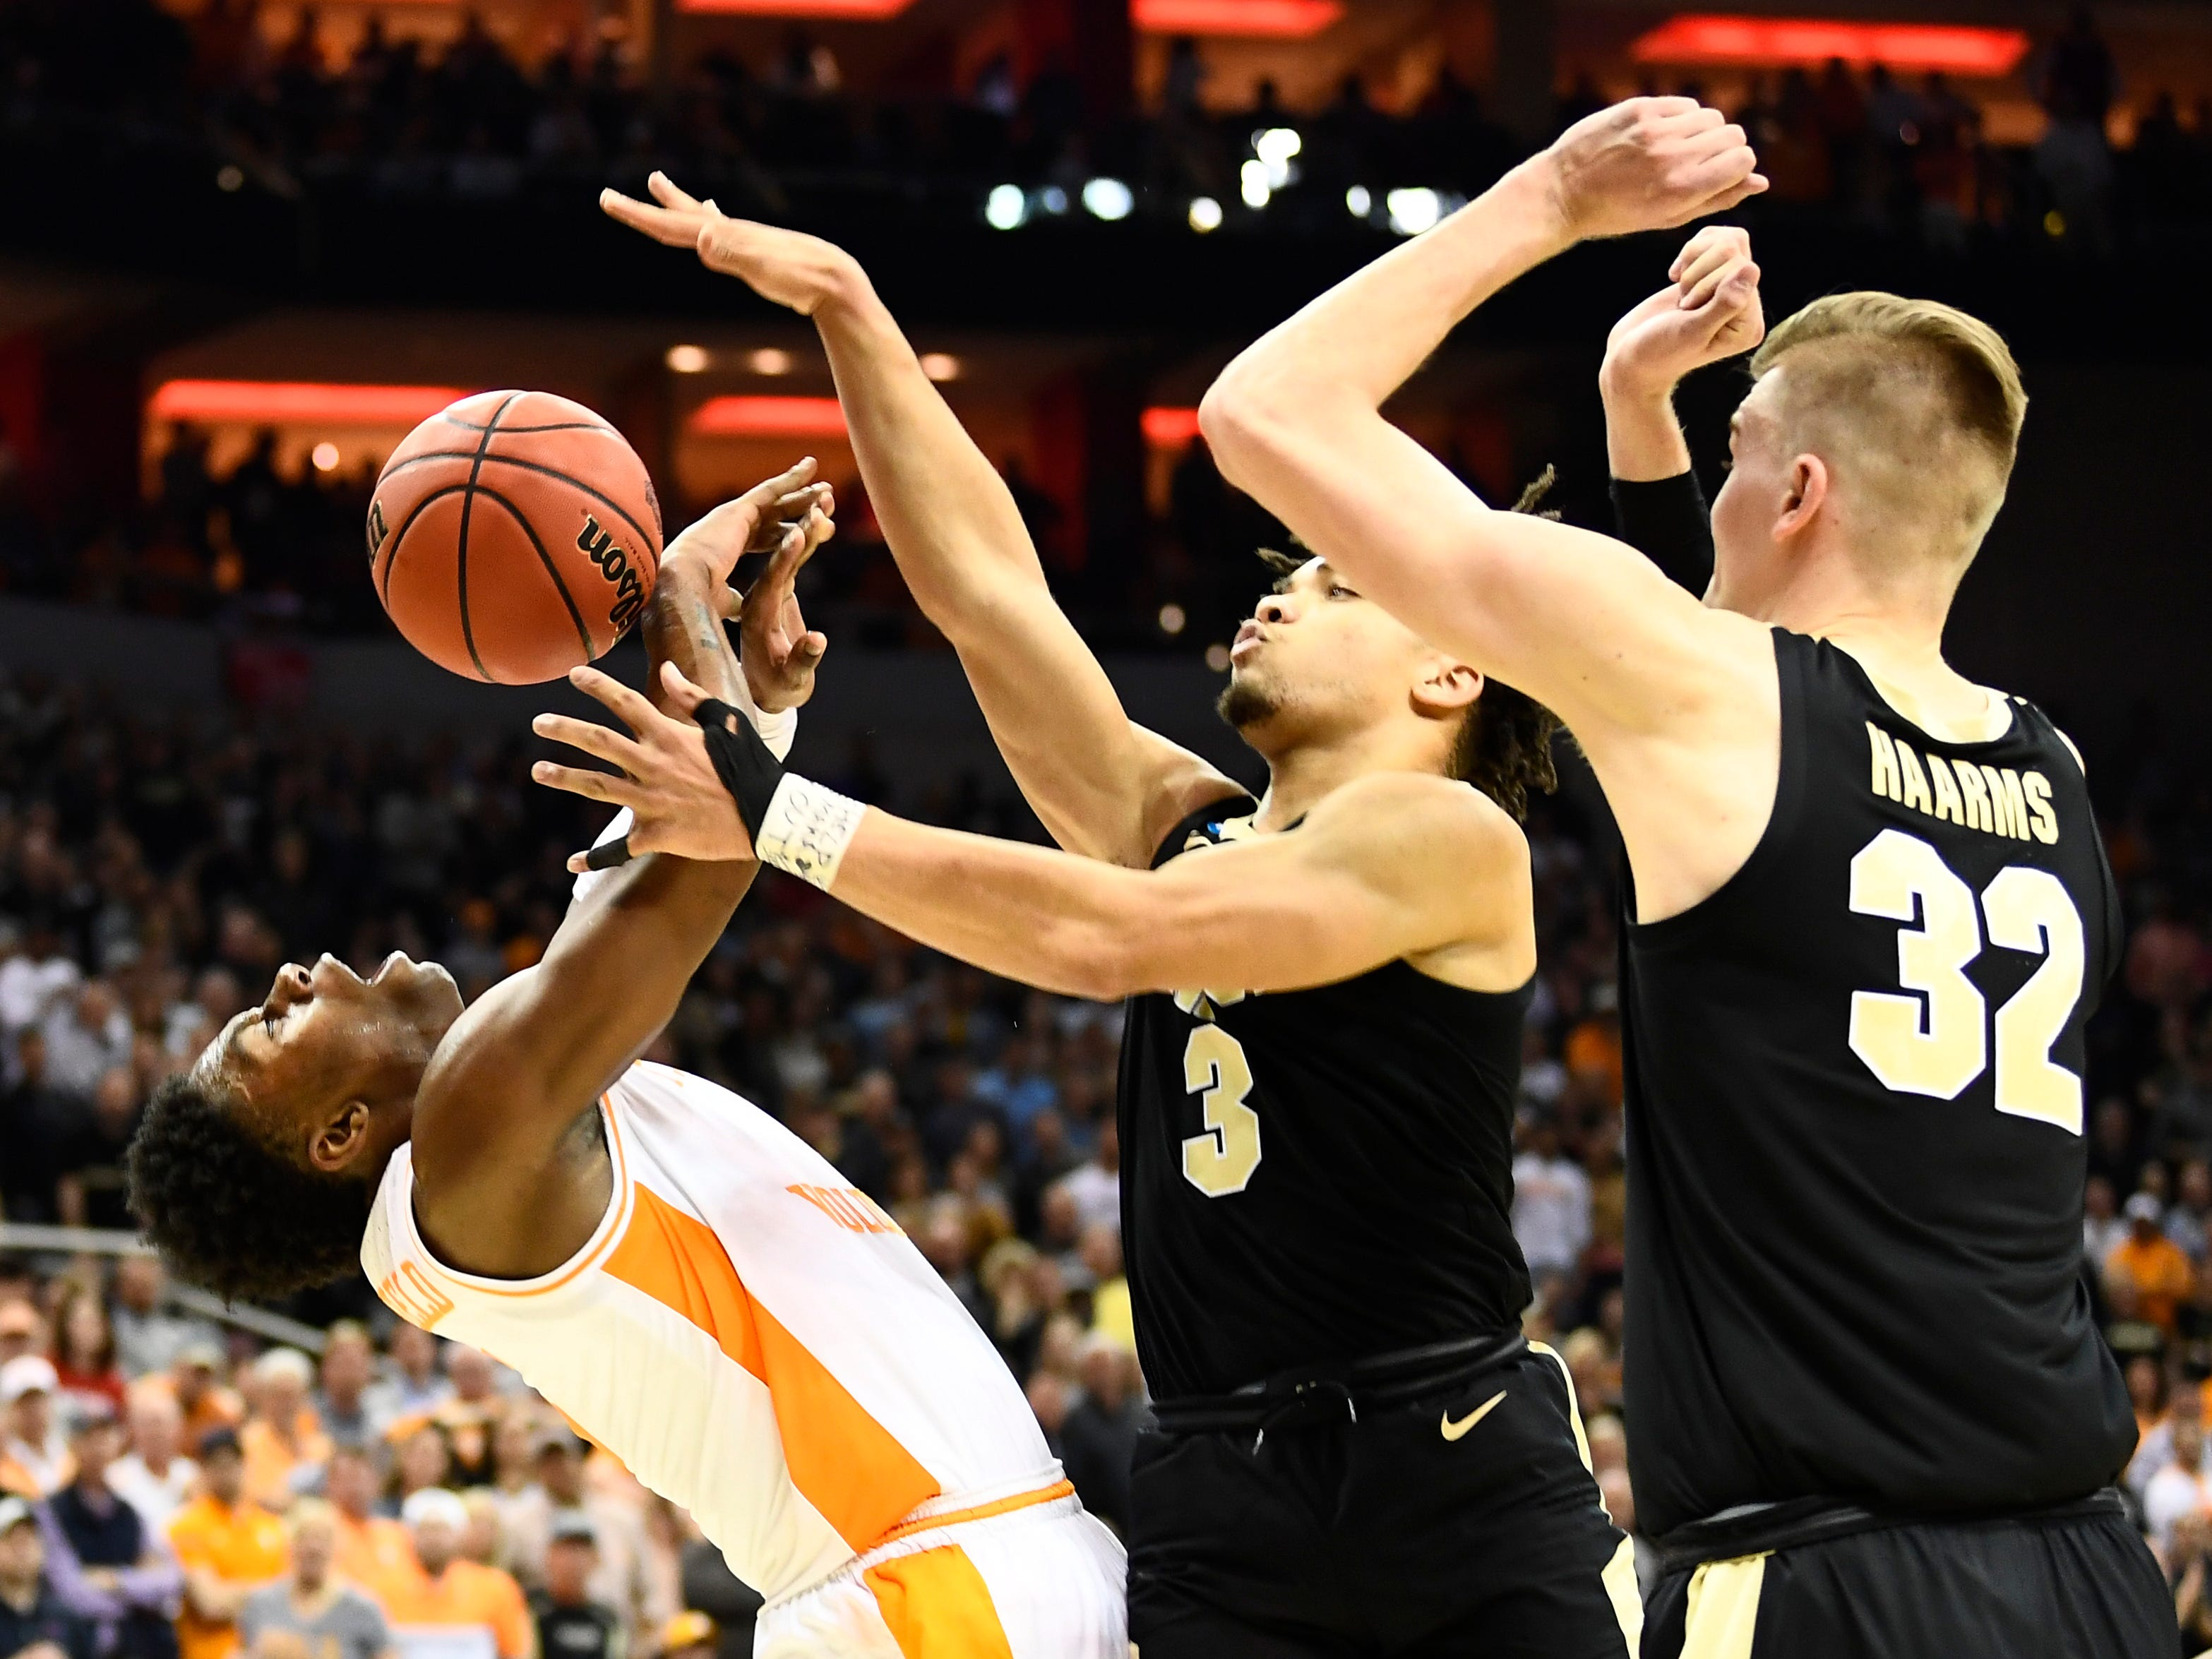 Purdue guard Carsen Edwards (3) fouls Tennessee guard Admiral Schofield (5) in their Sweet 16 game in the NCAA Tournament Thursday, March 28, 2019, at the KFC Yum! Center in Louisville, Ky.